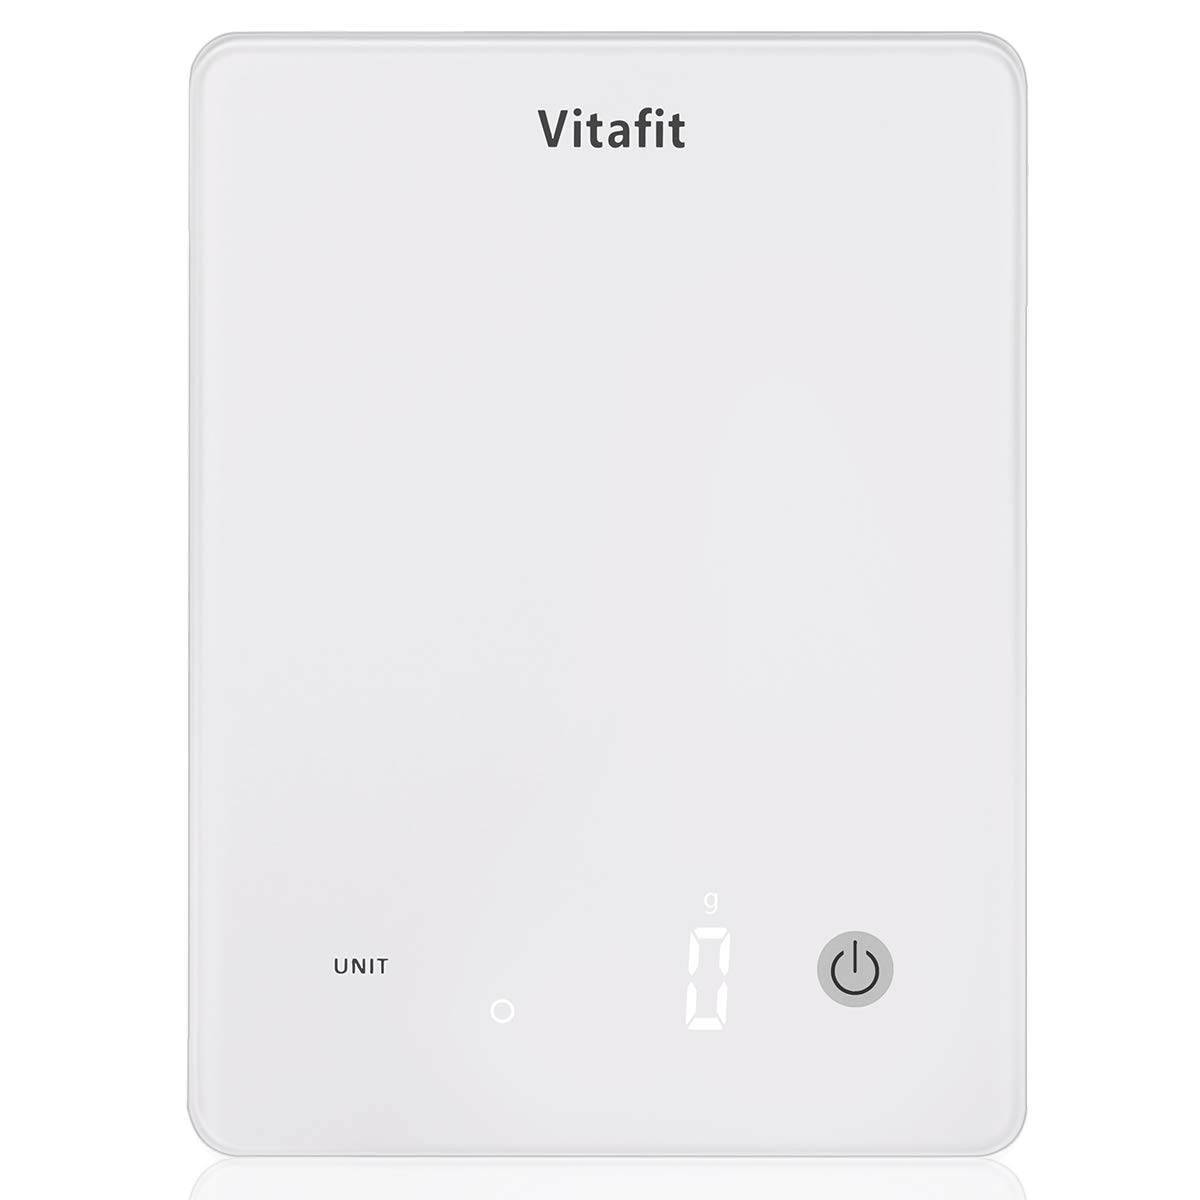 Vitafit 10kg Digital Food Kitchen Scales